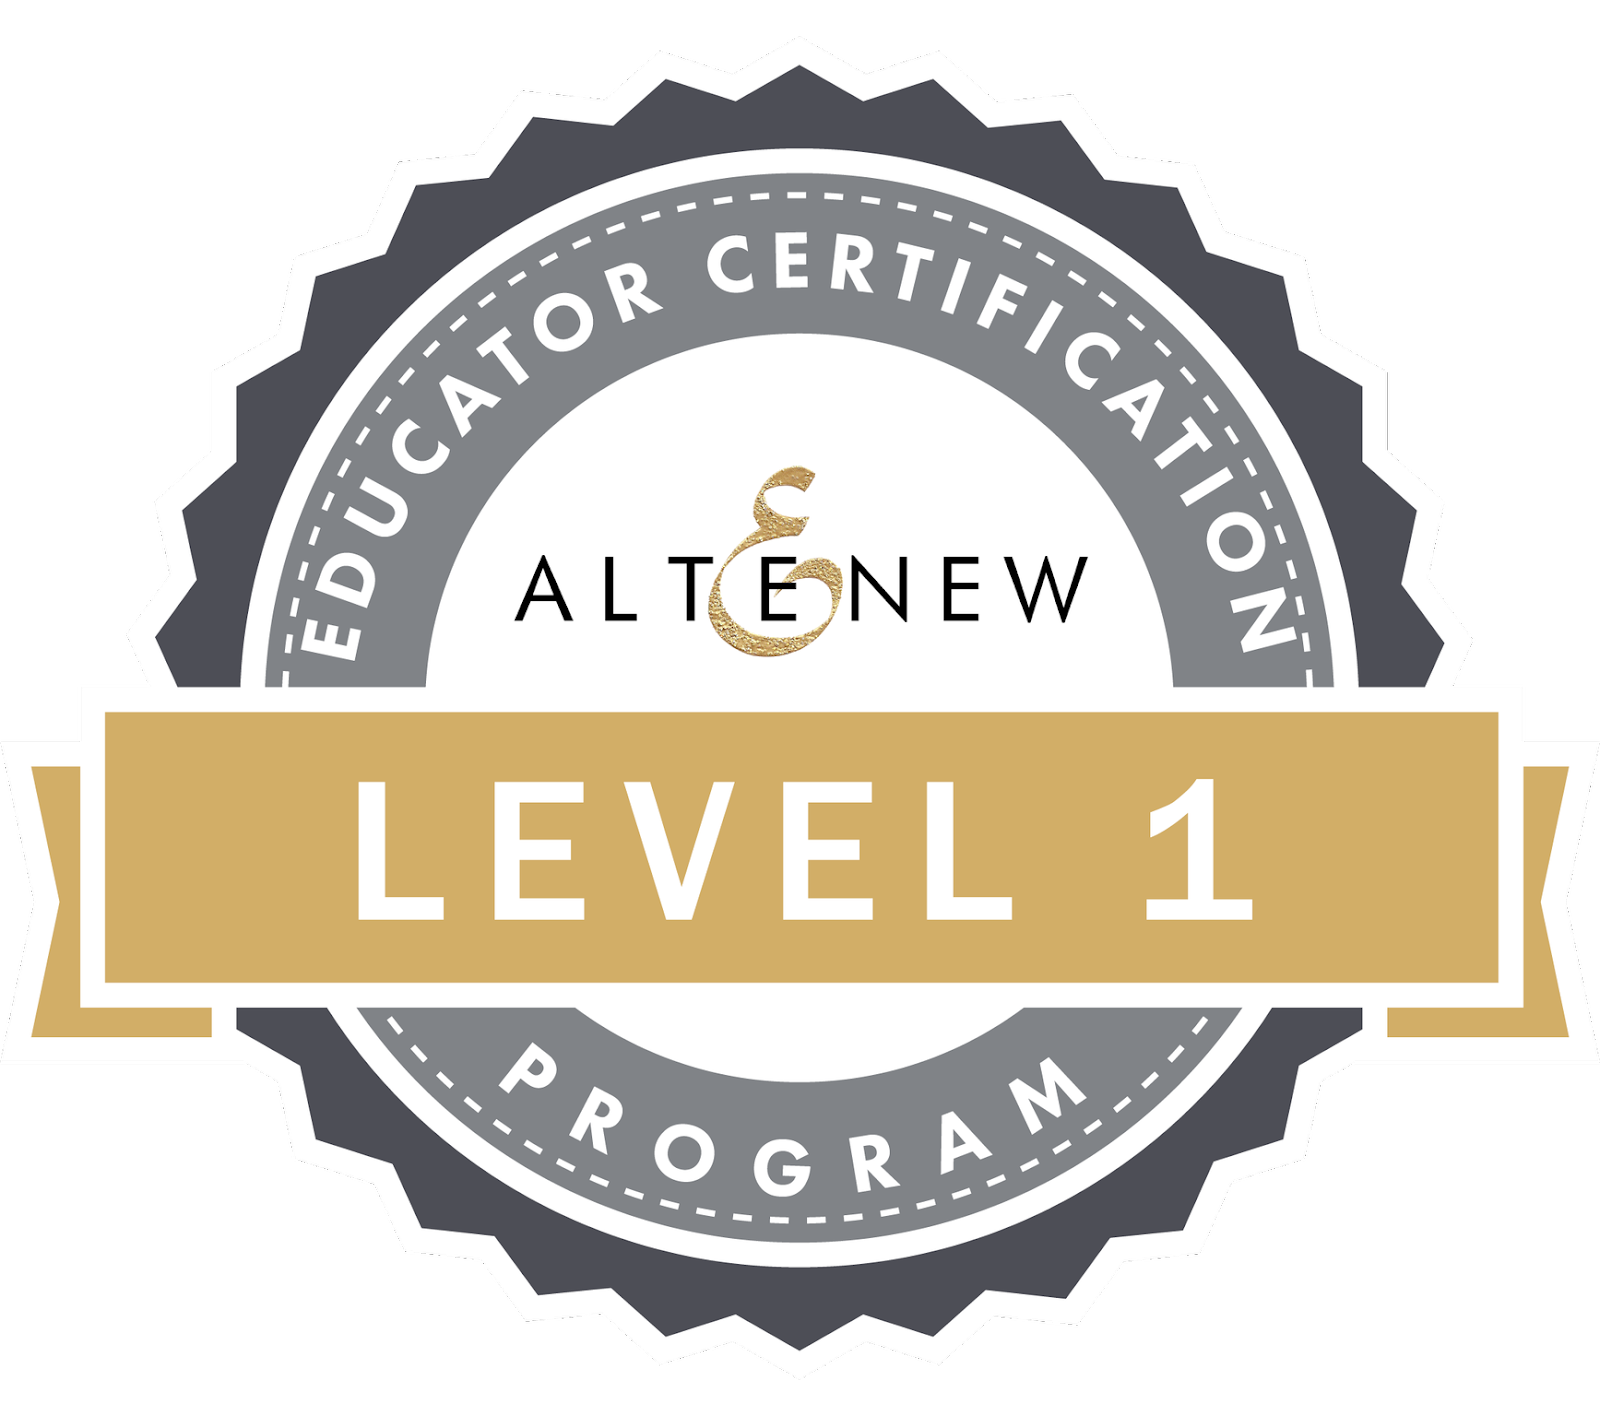 Altenew Educator Level 1